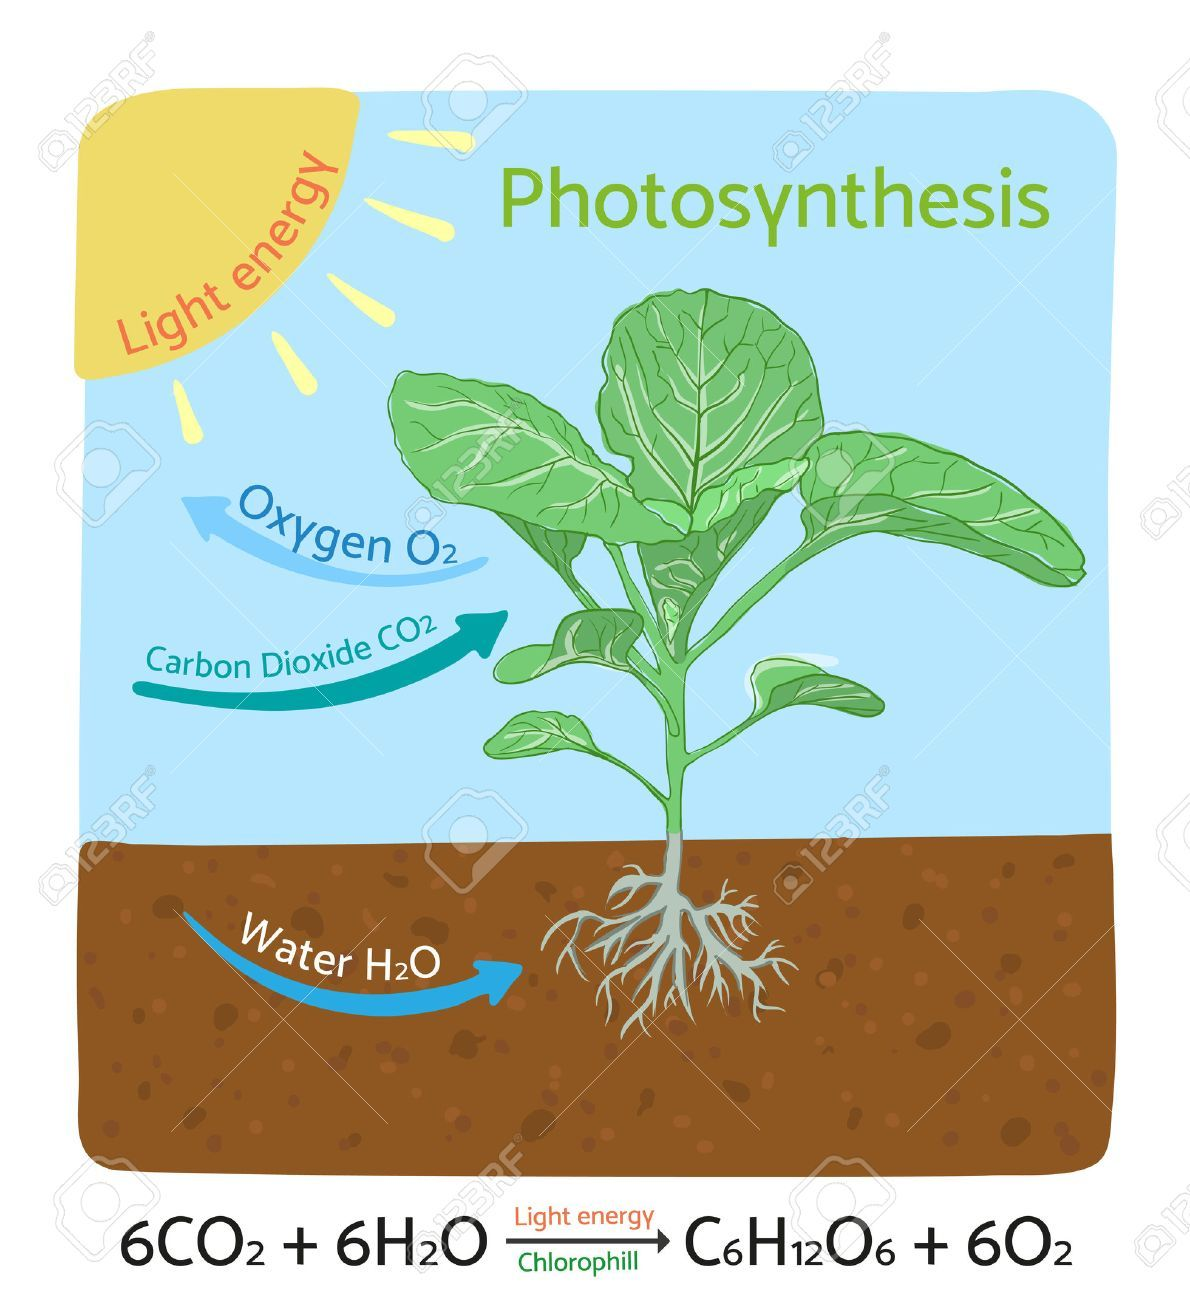 Photosynthesis Diagram Schematic Illustration Of The Photosynthesis Process Illustration Ad Schematic Diagram Photosynthesis Light Energy Infographic